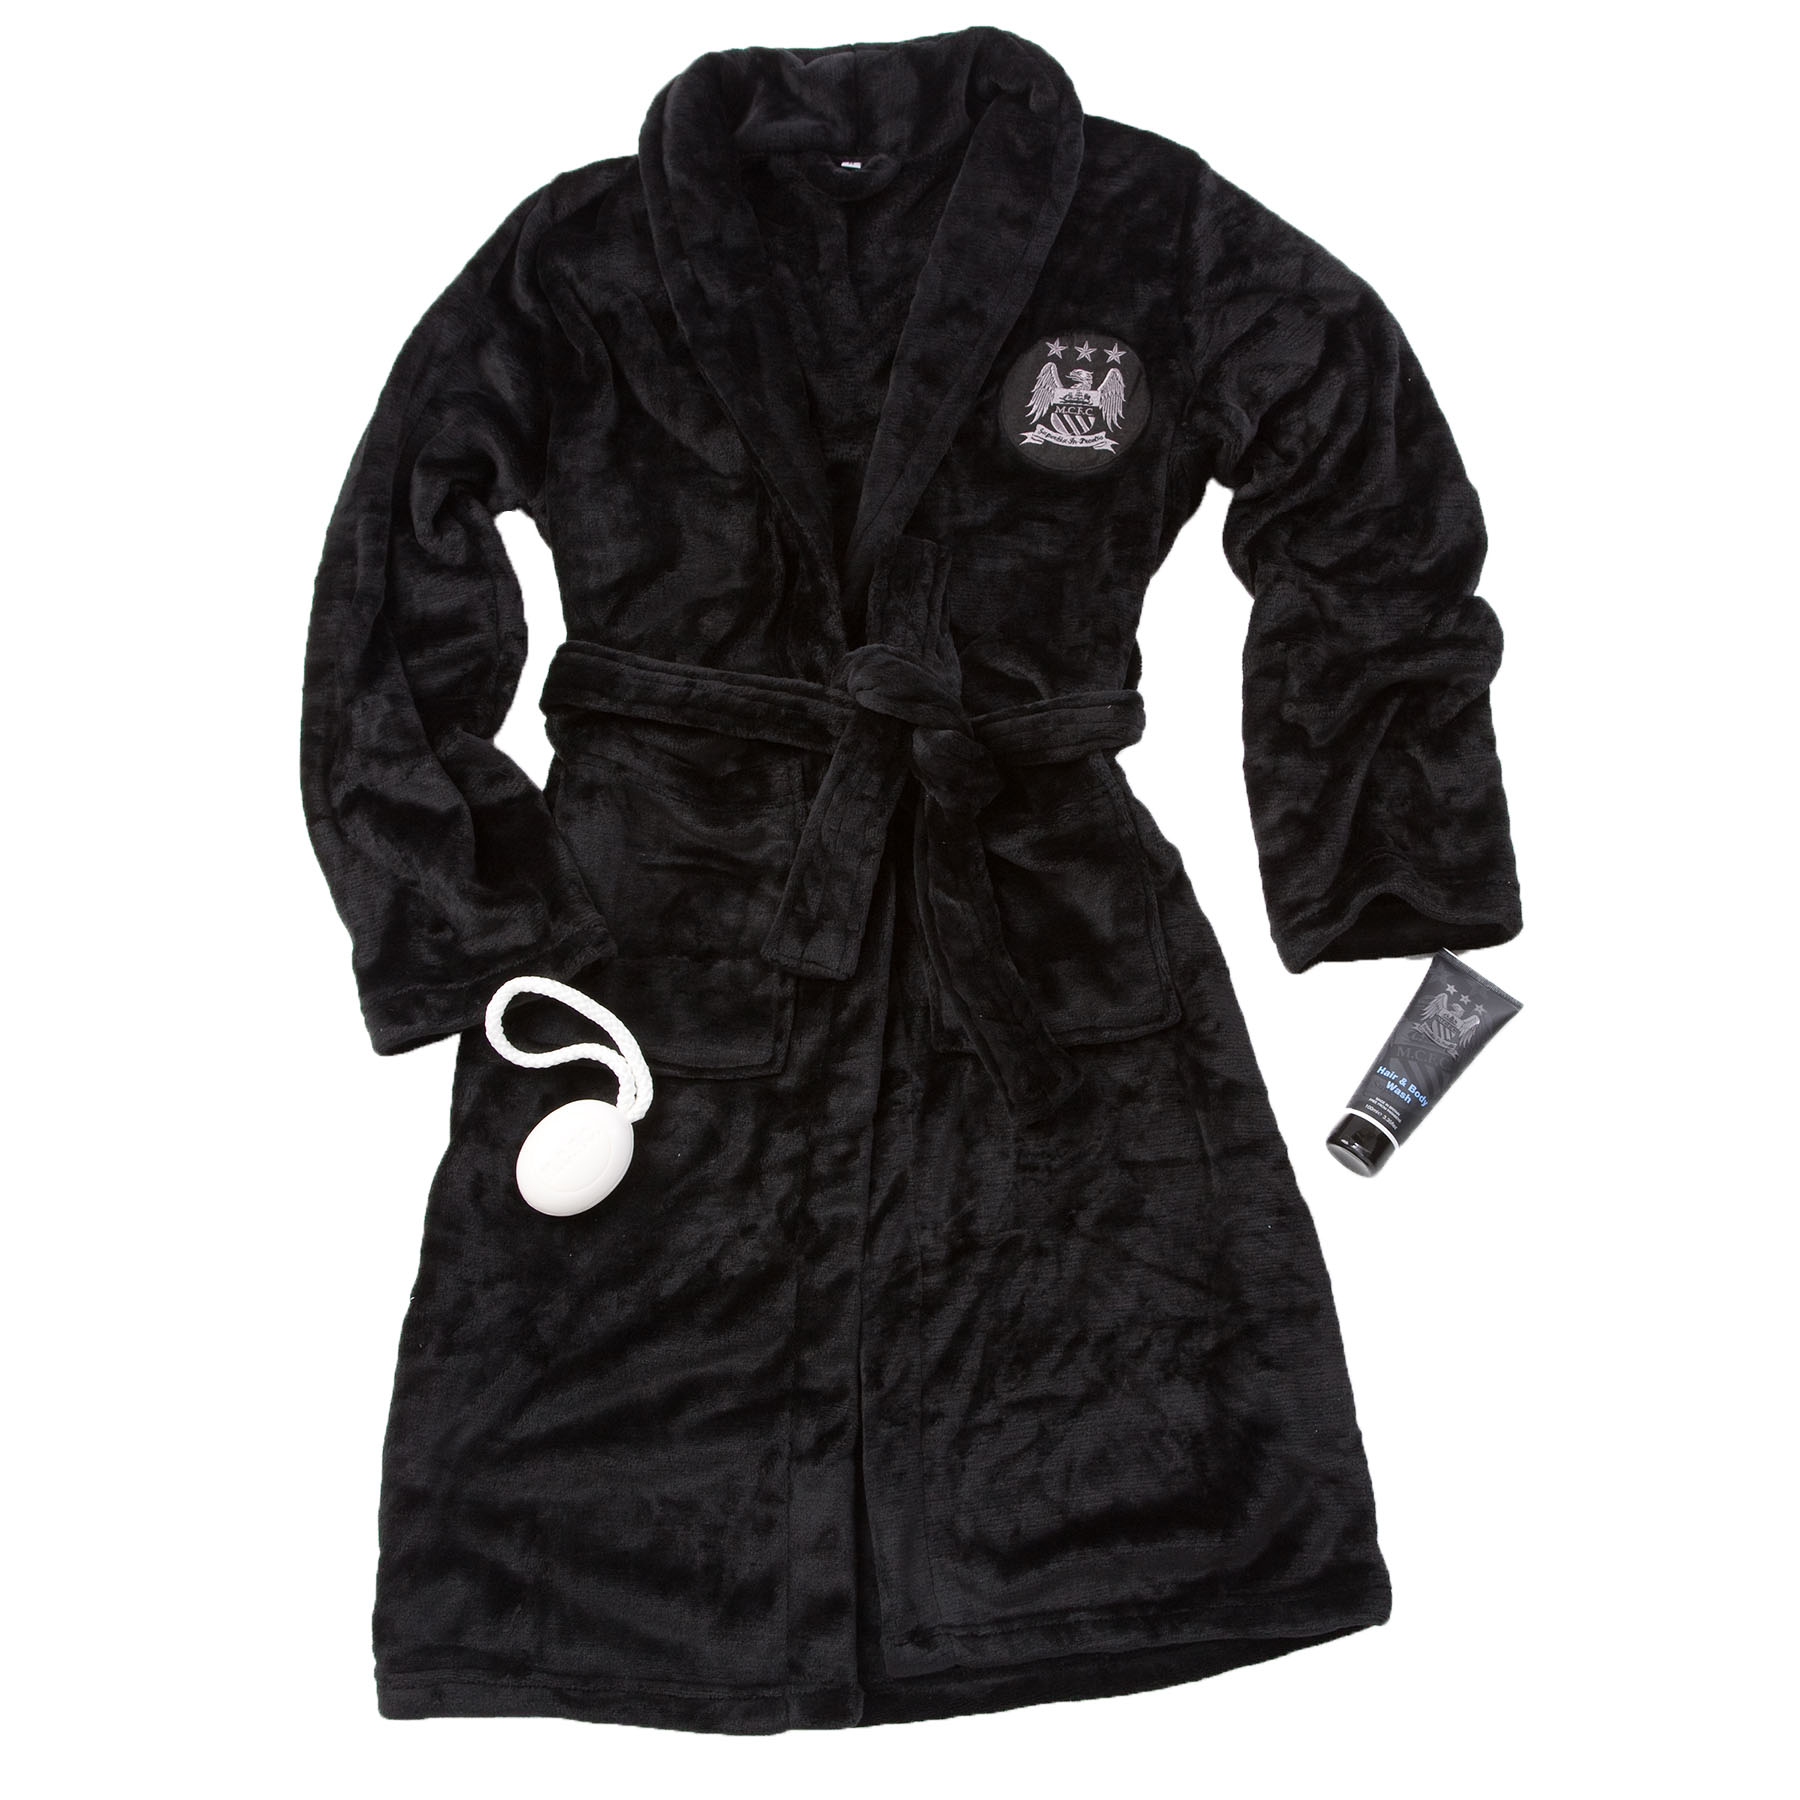 Manchester City Luxury Bathrobe Set